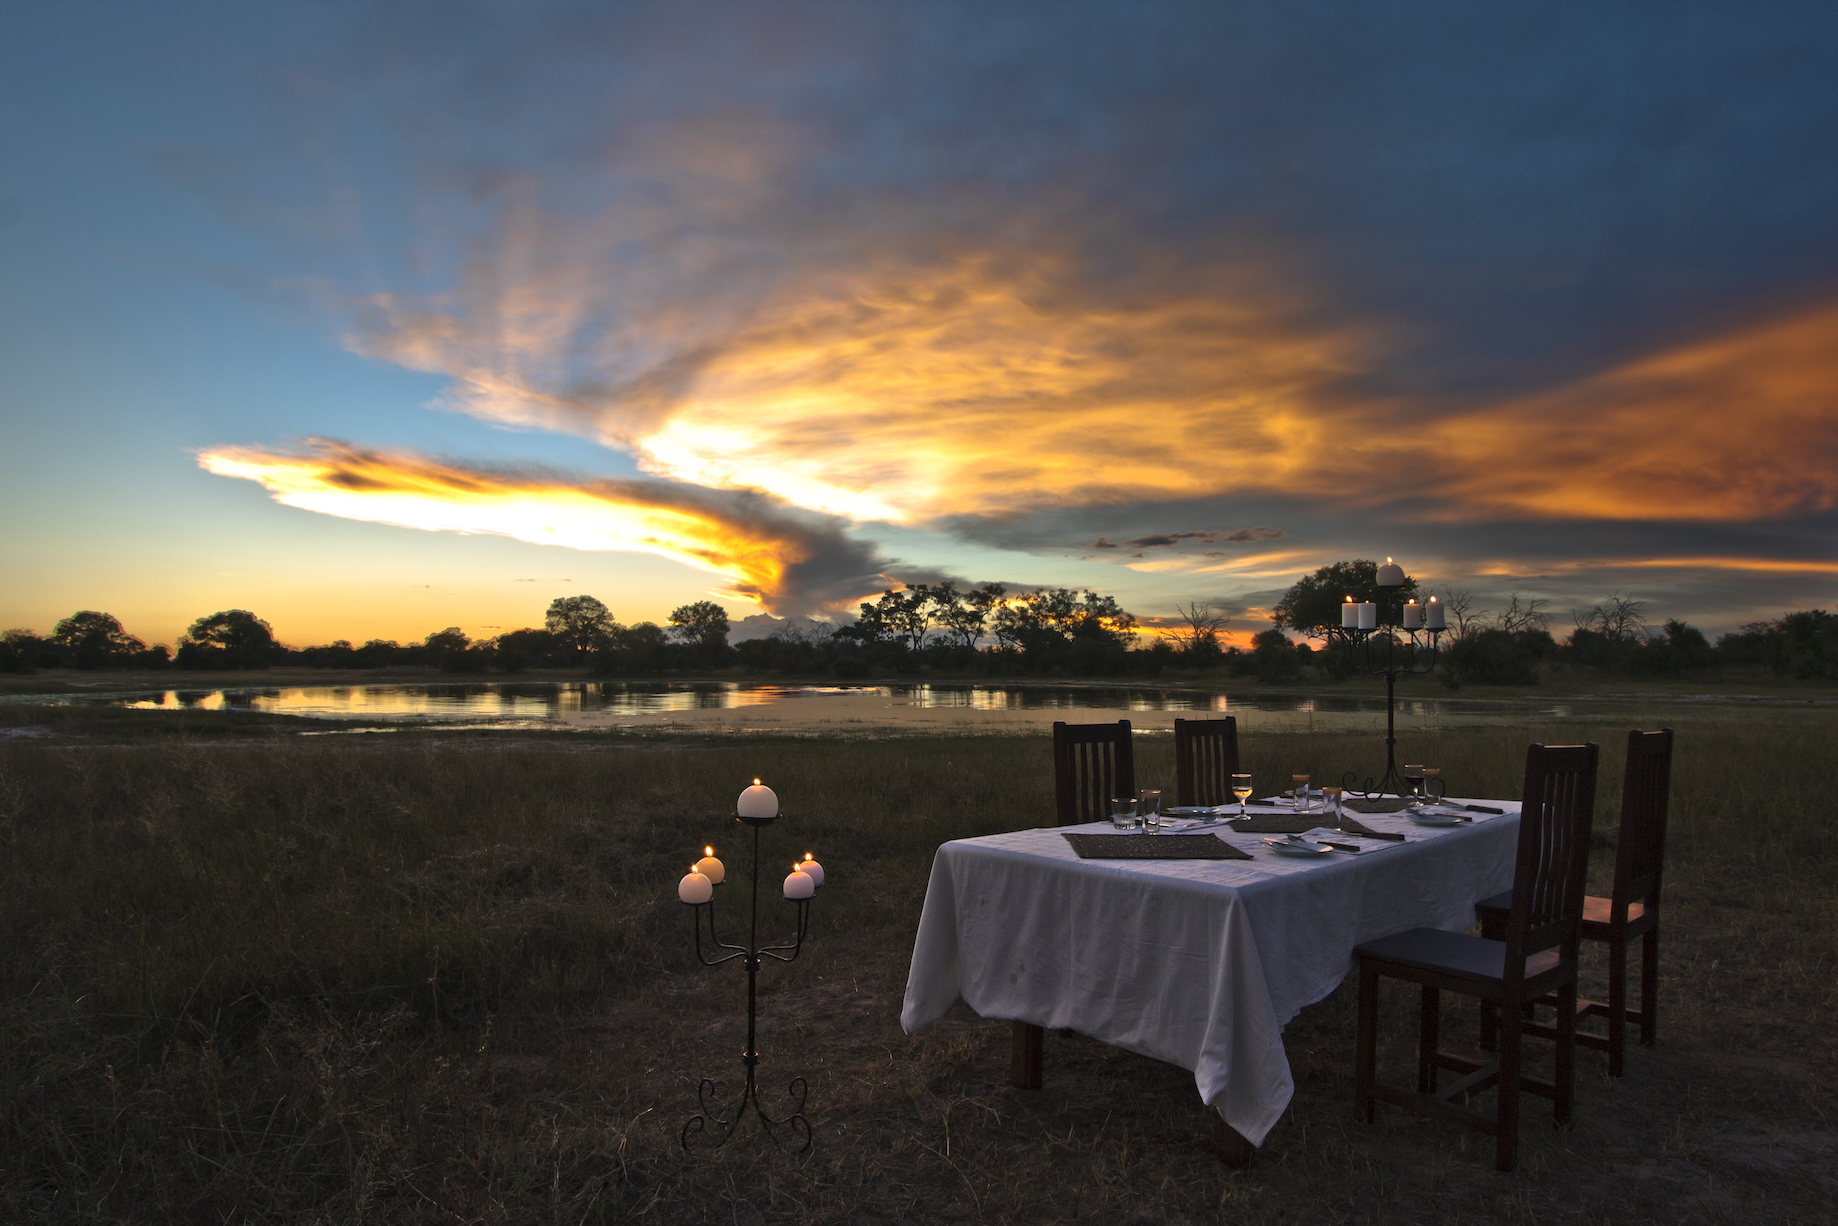 Sundowner im Bomani Tented Camp in Hwange, Simbabwe